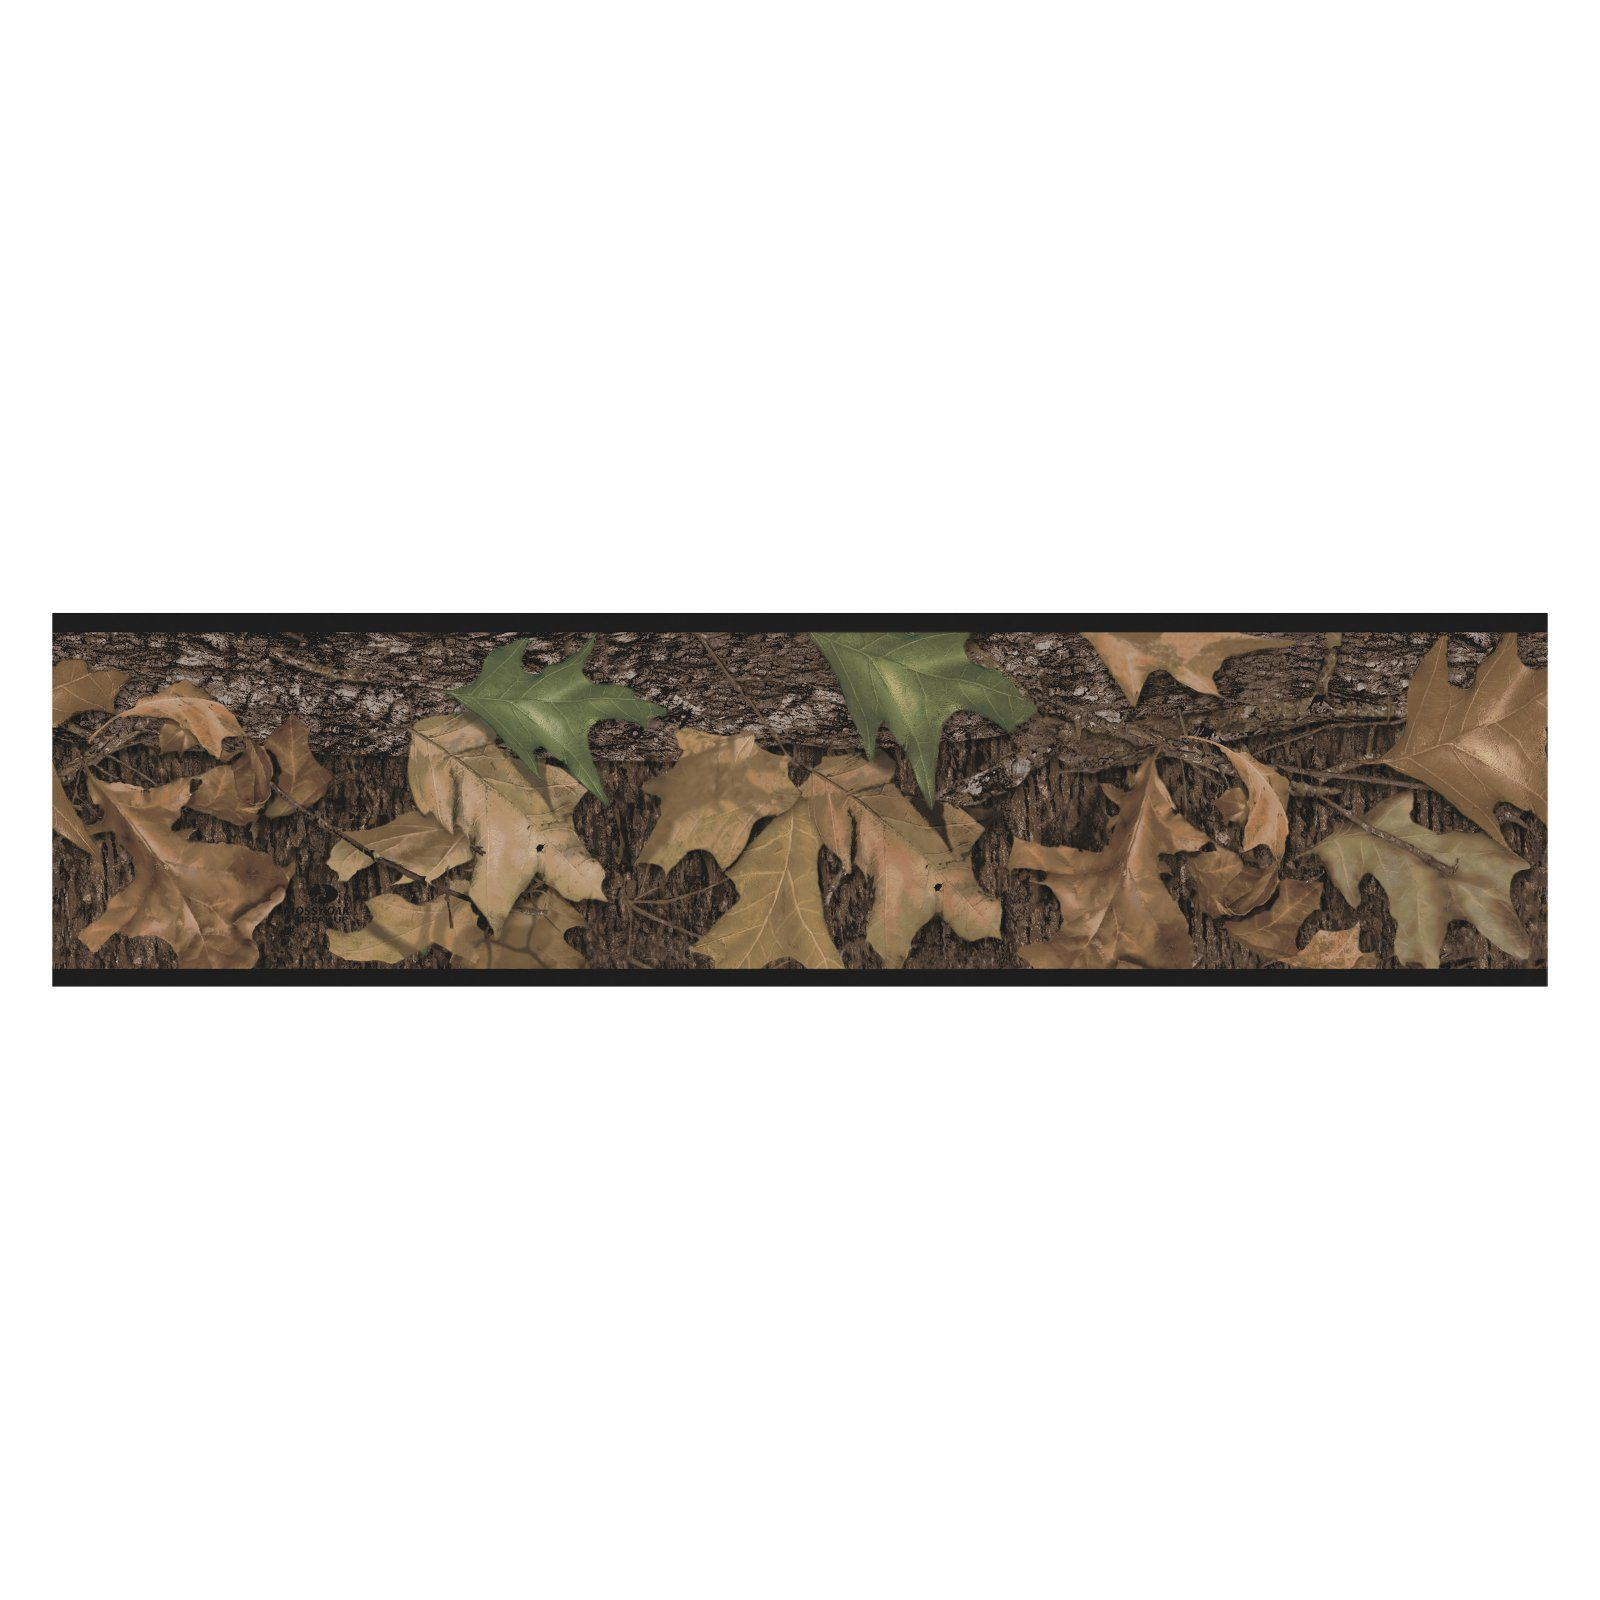 Mossy Oak Peel and Stick Border (With images) Mossy oak